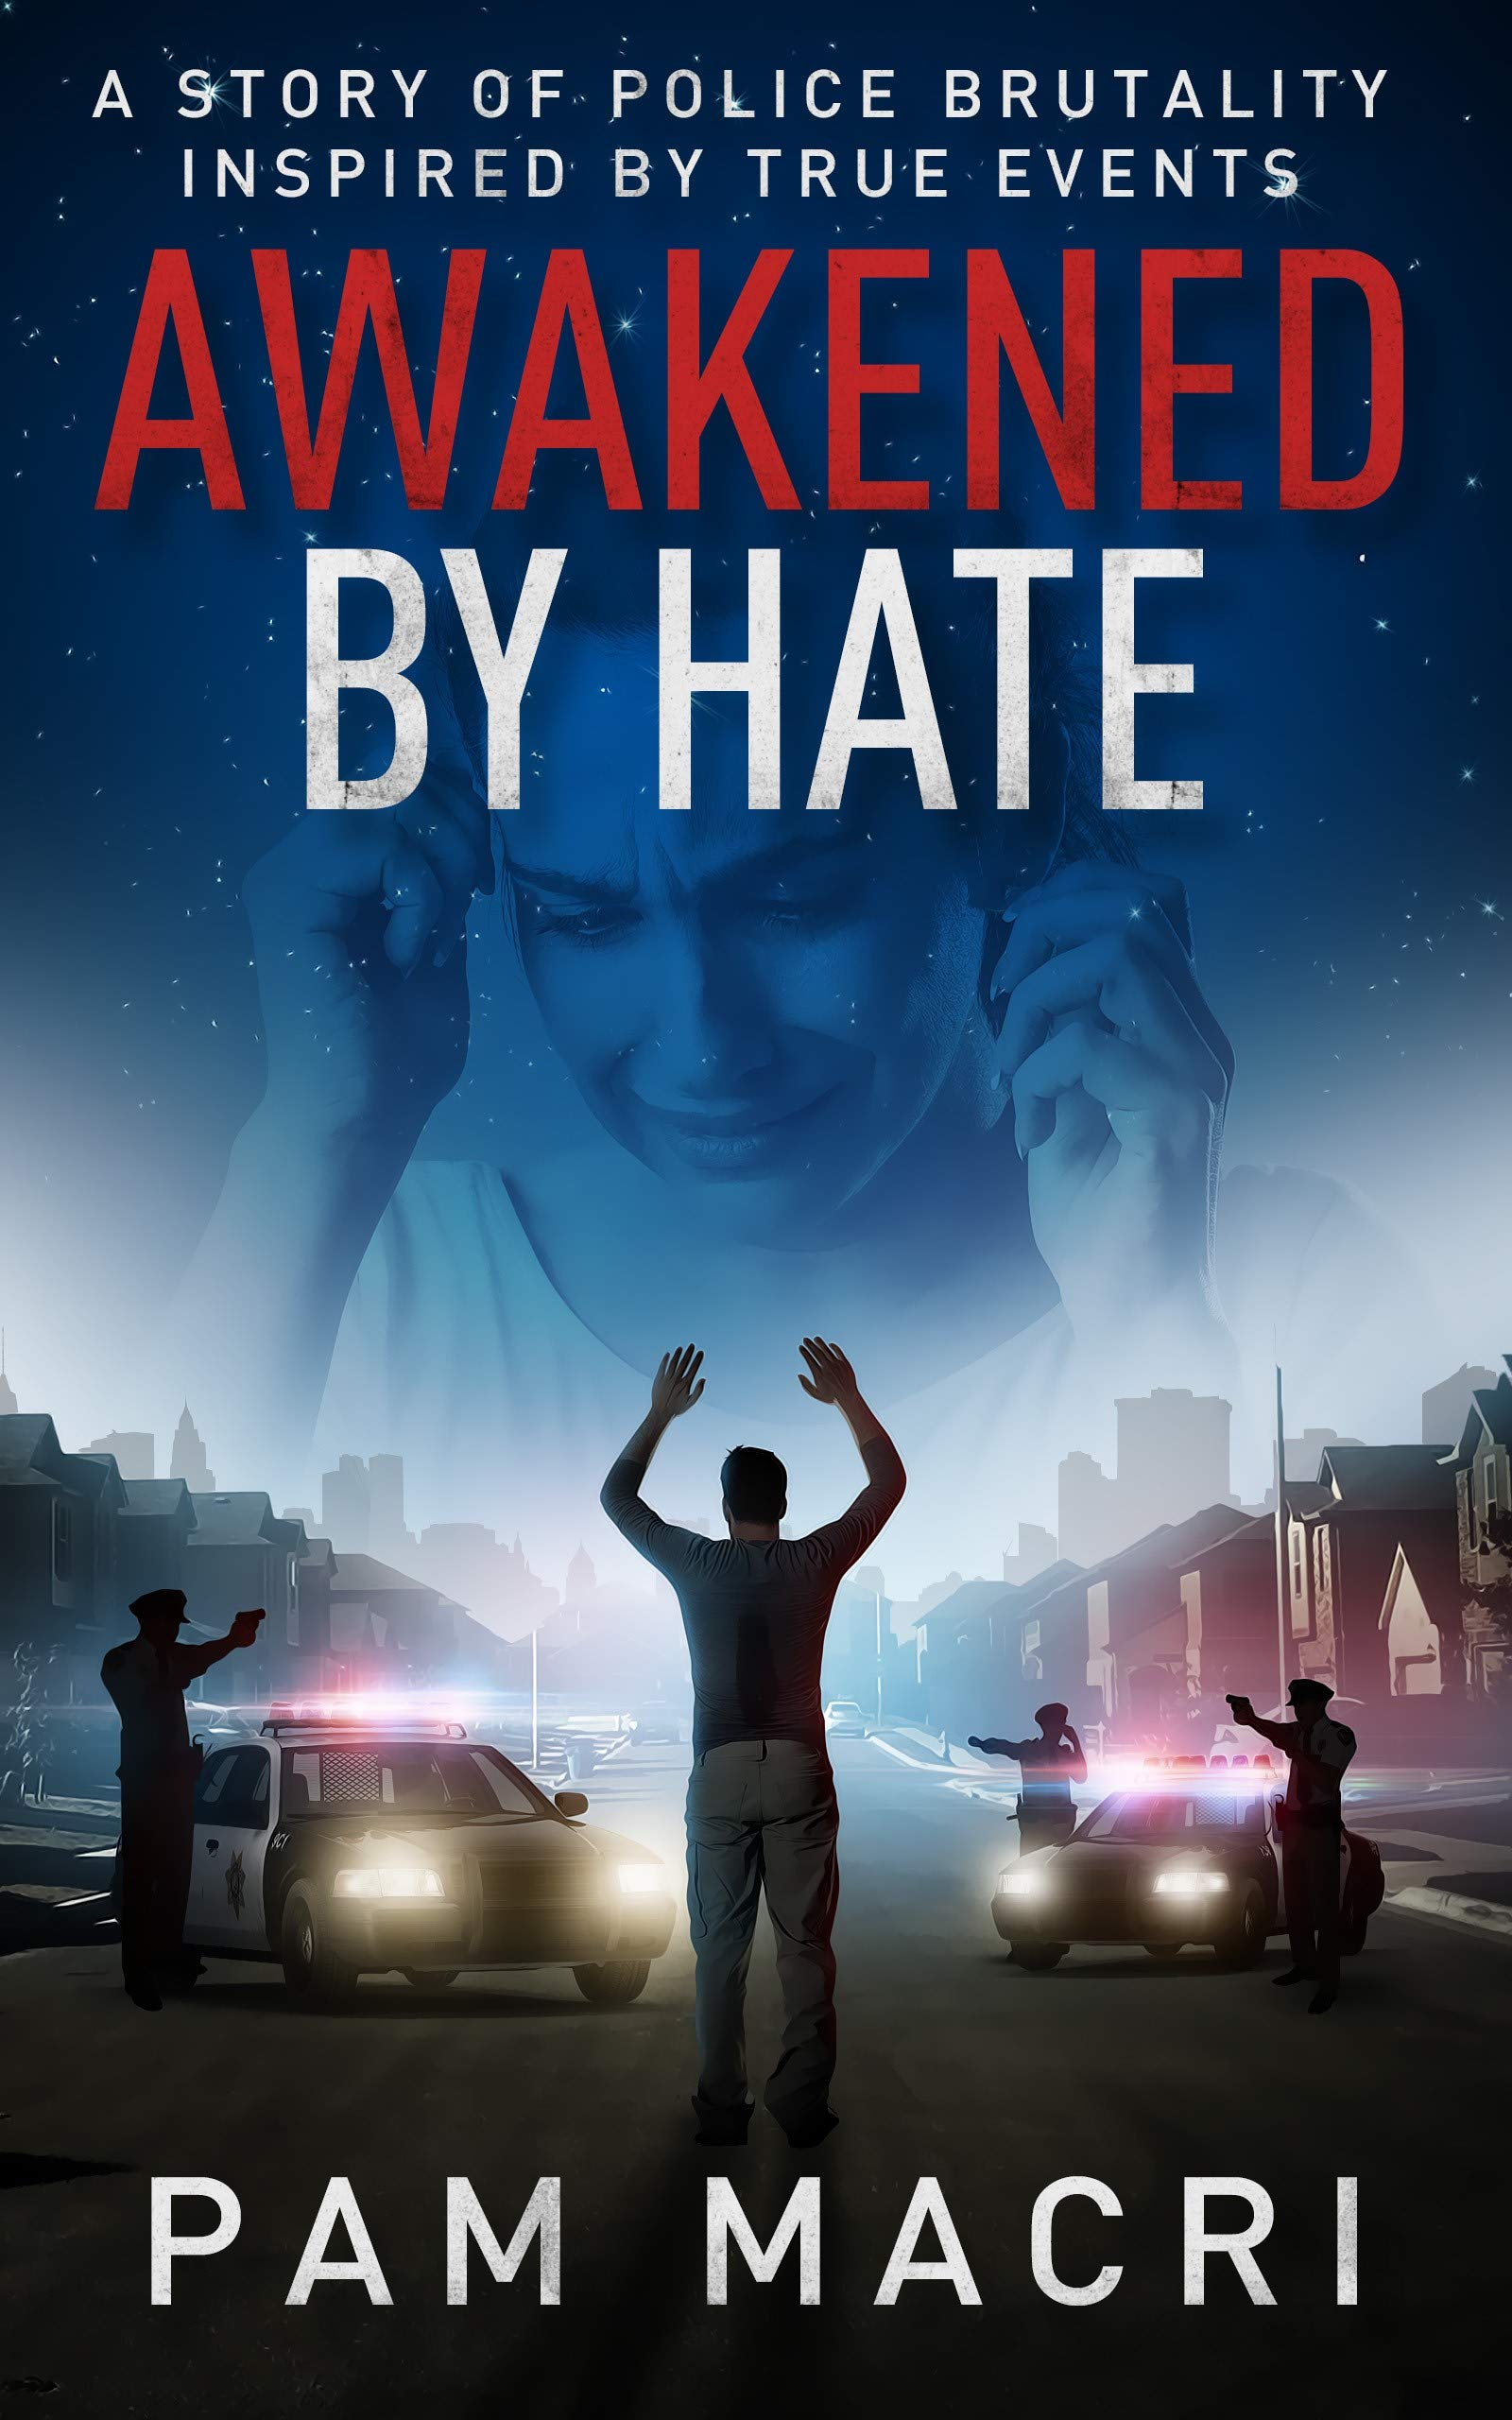 AWAKENED BY HATE A story of police brutality inspired by true events: Who can you trust when police brutality happens? Did it just happen to us? Can forty seconds change your life forever?